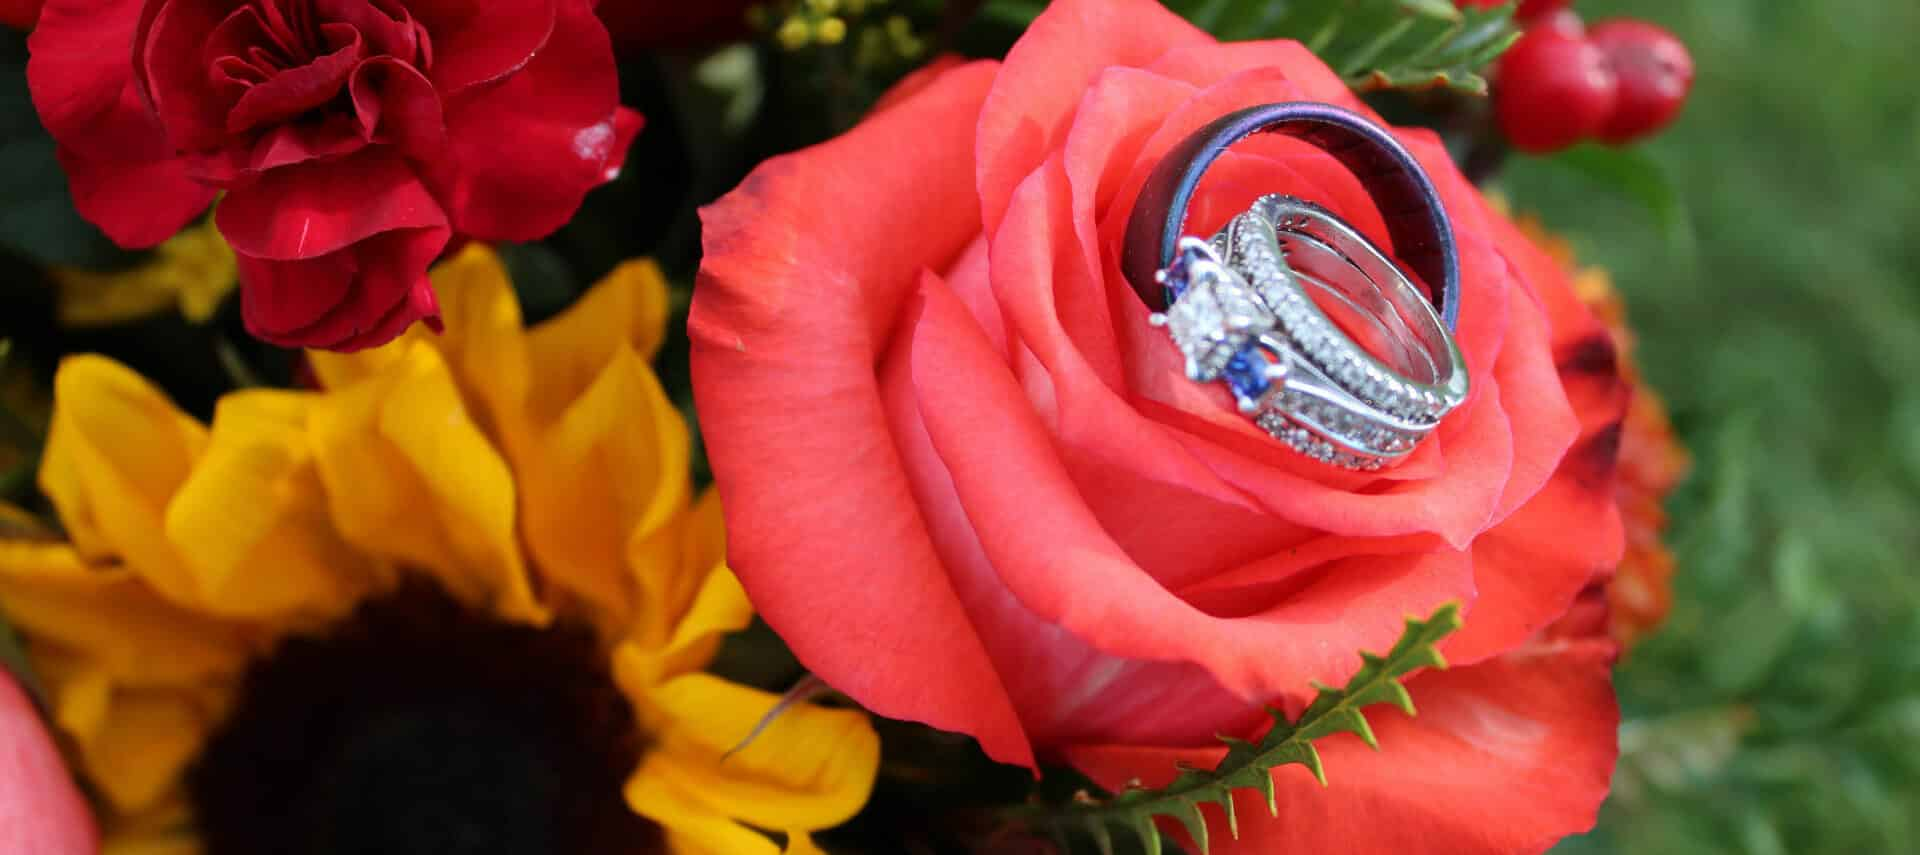 Wedding bands sitting on salmon rose with black-eyed susan and other flowers in the garden